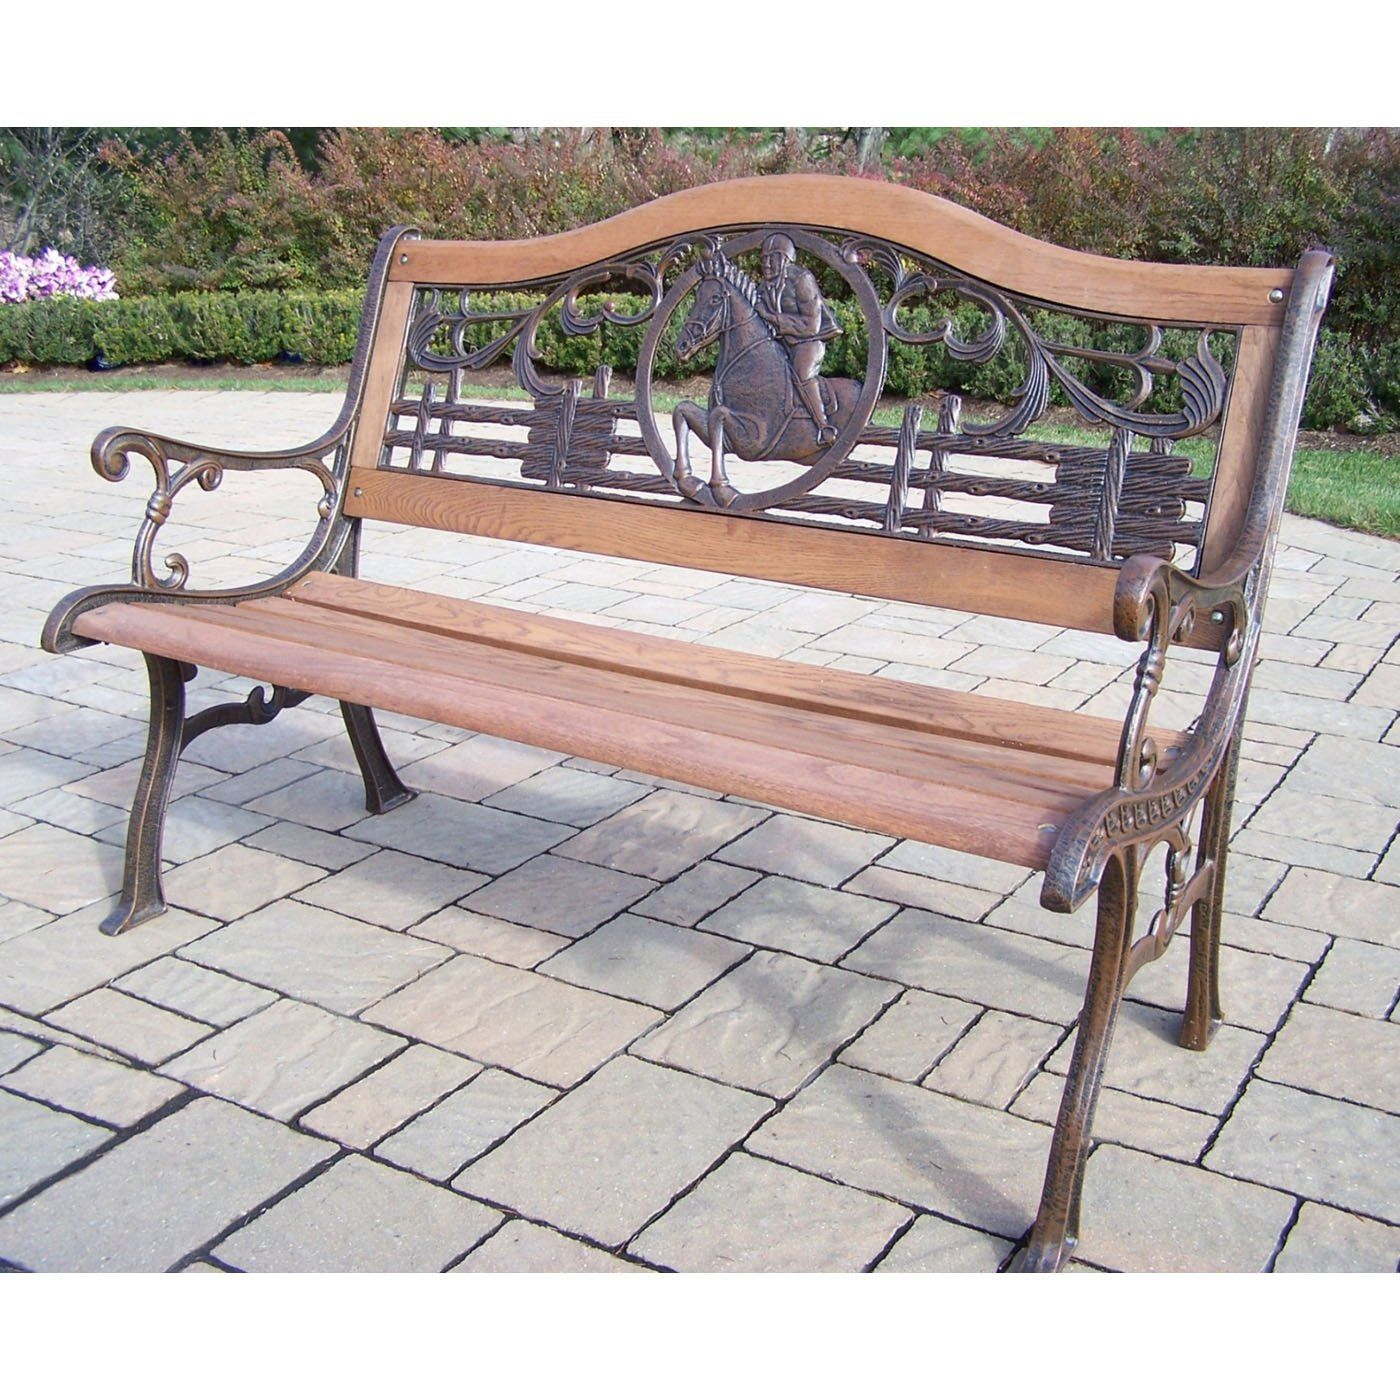 Oakland Living 6126 2 Ab Animals Horse Bench Oakland Living Buy Outdoor Furniture Outdoor Furniture - Garden Furniture Clearance Tunbridge Wells